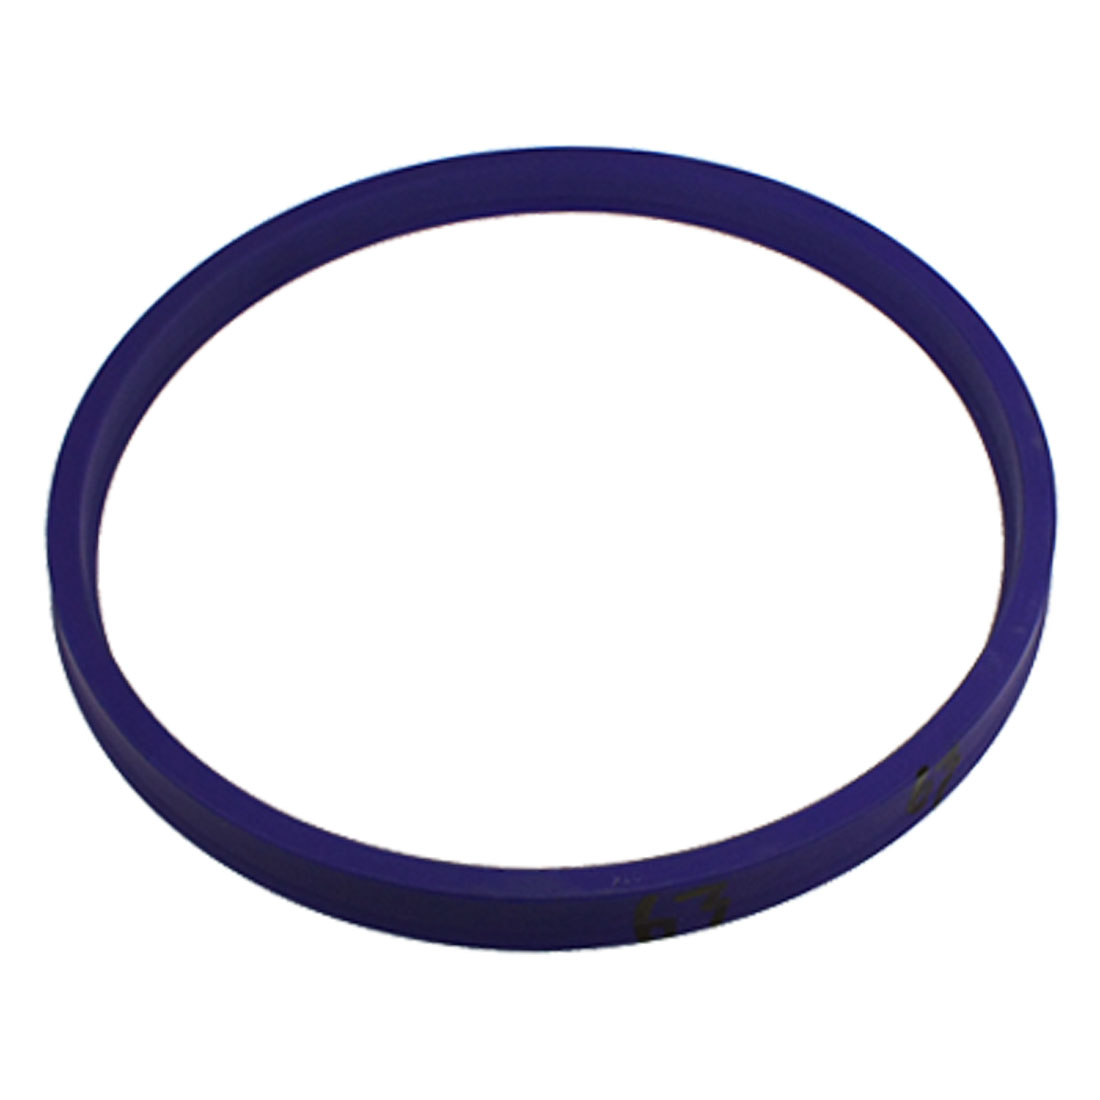 Hydraulic 210mm x 226mm x 18mm Piston Rod PU Oil Grease Seal Ring